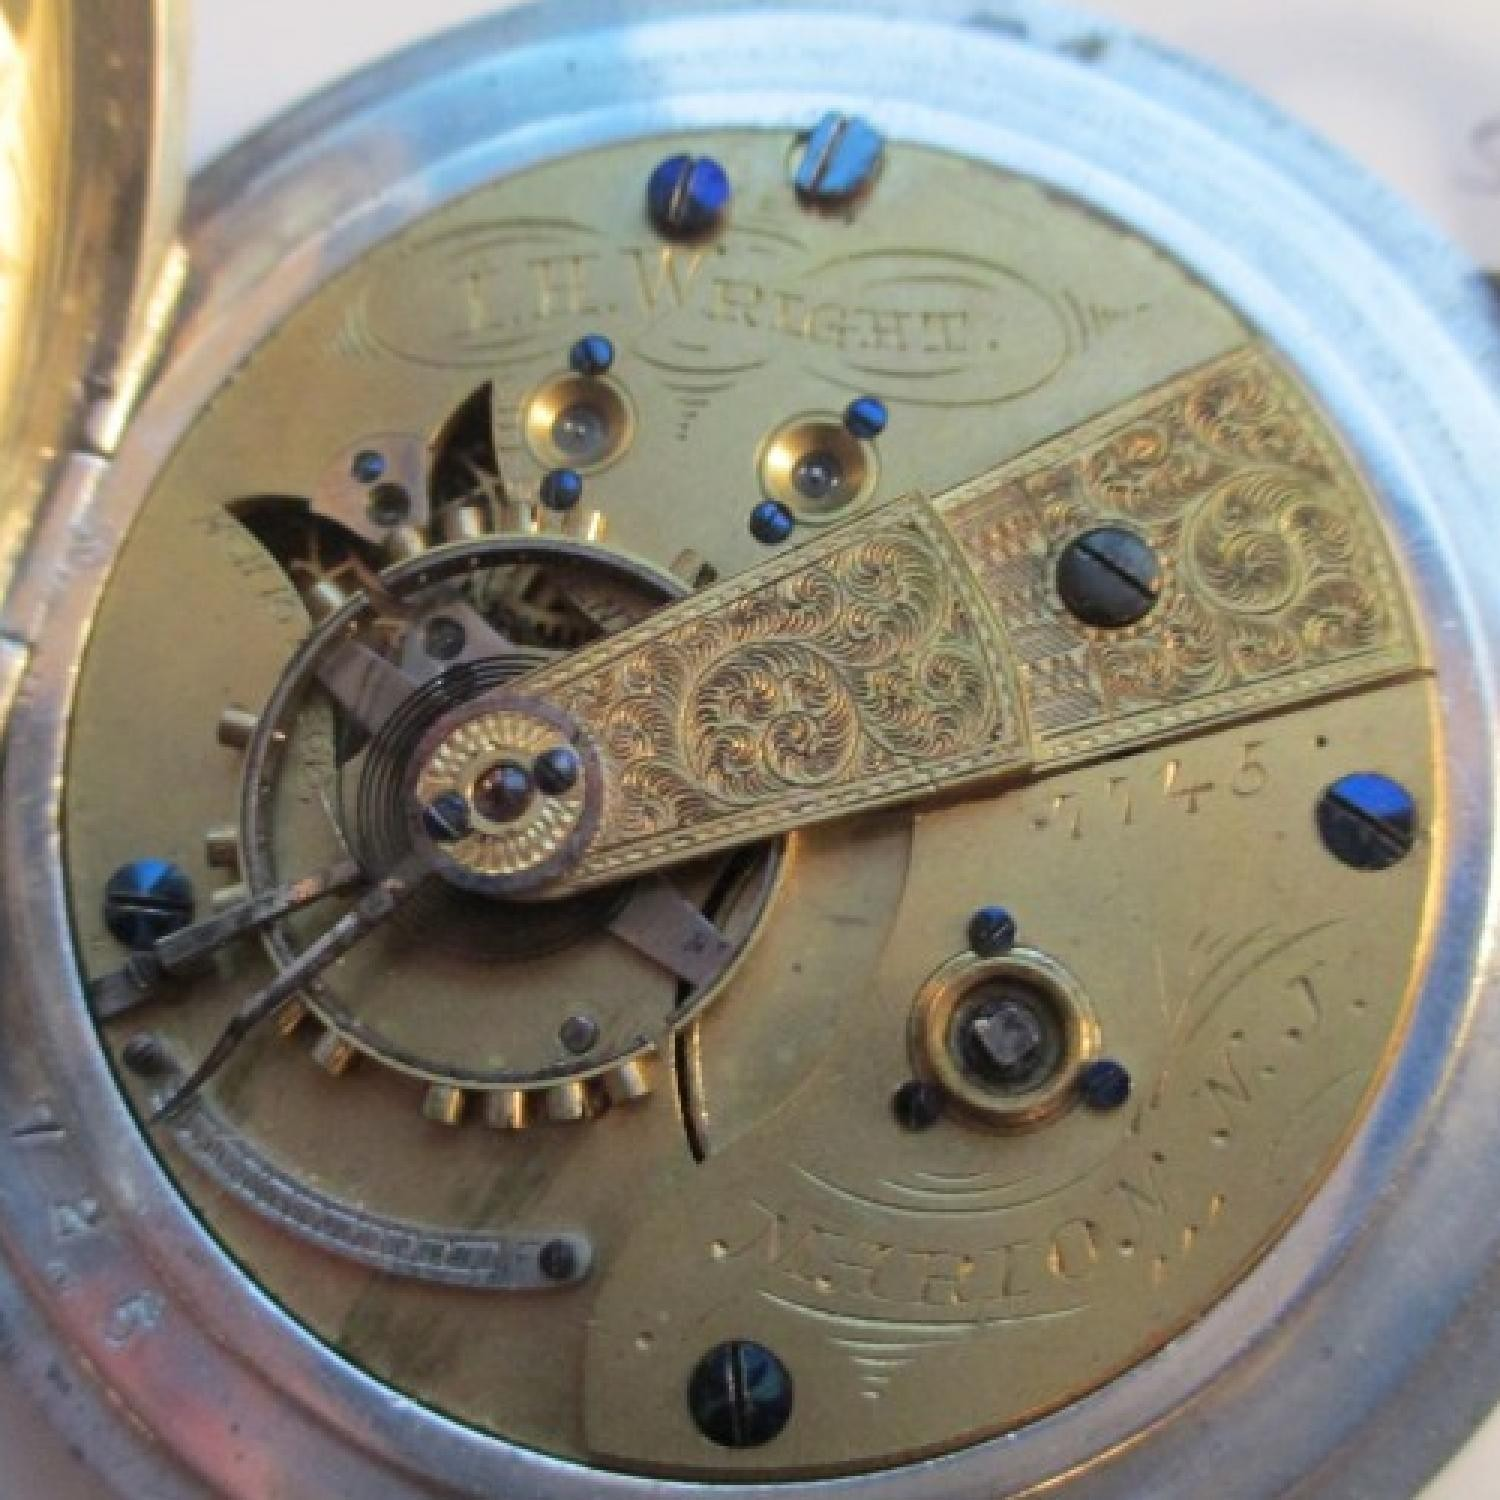 Image of U.S. Watch Co. (Marion, NJ) I.H. Wright #7745 Movement